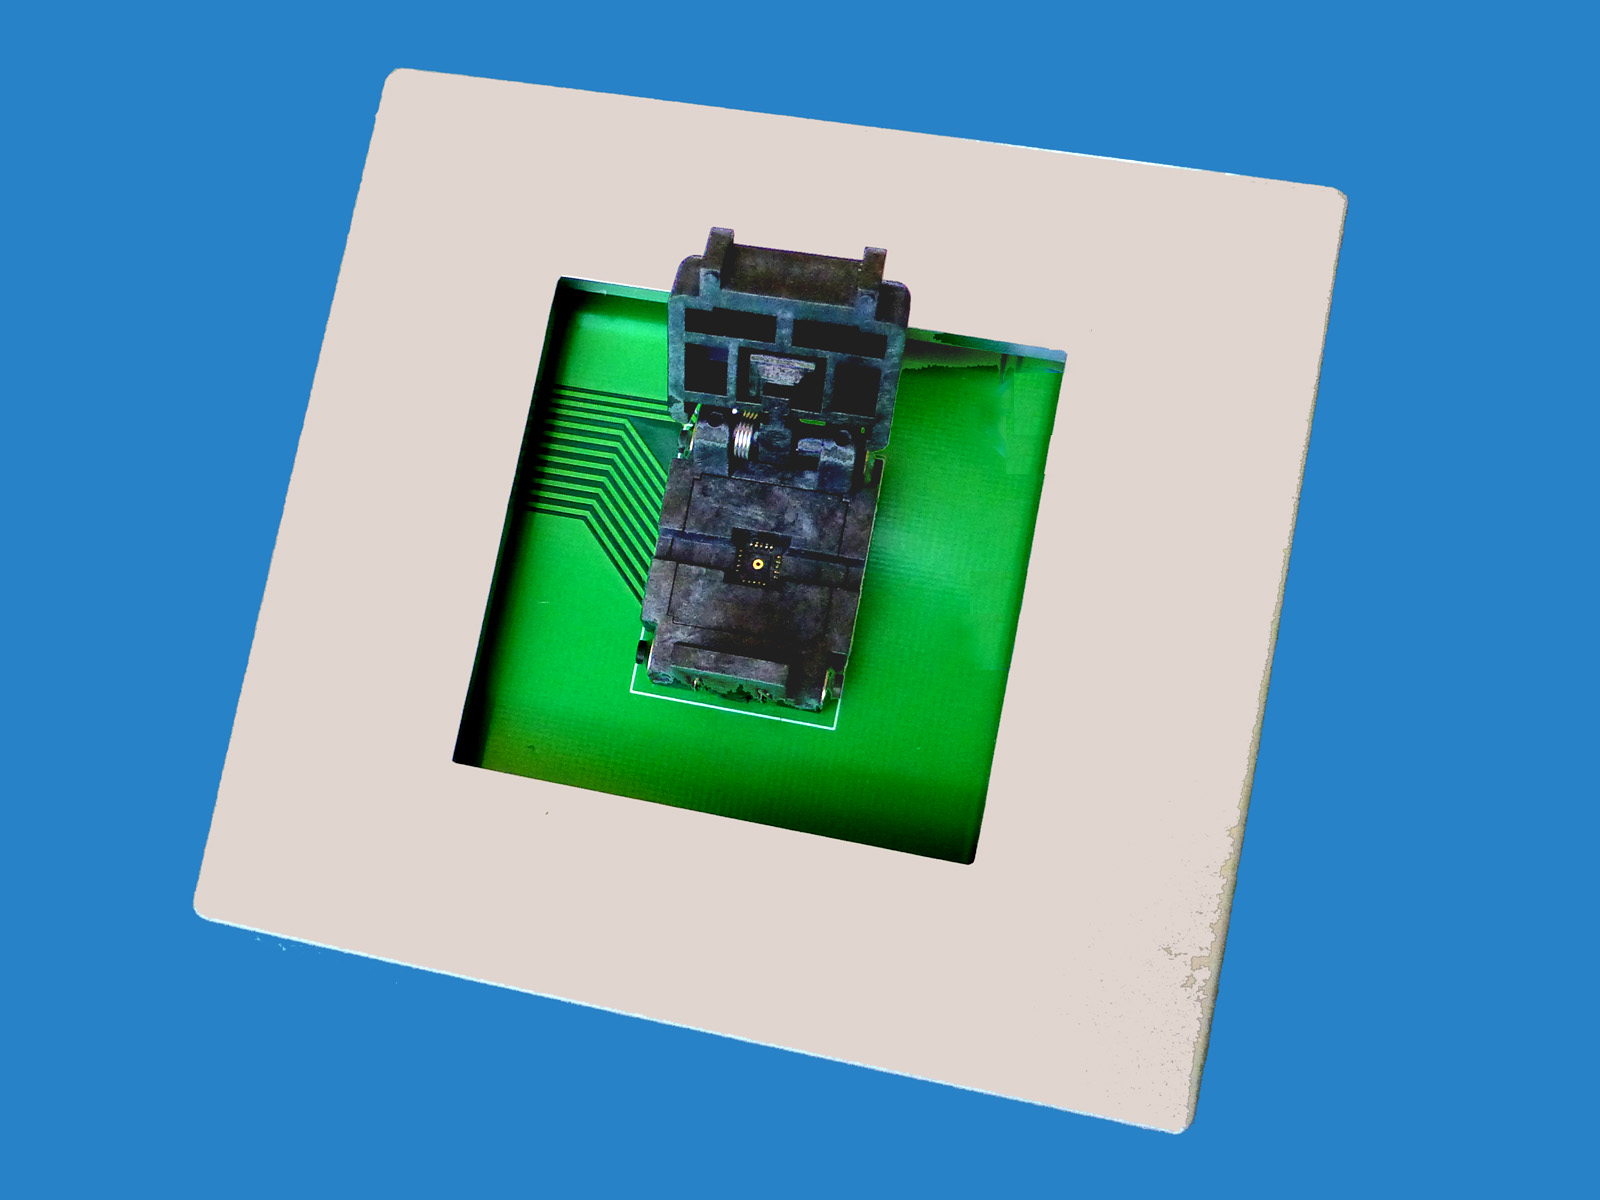 DX4011 QFN20 programmer adapter